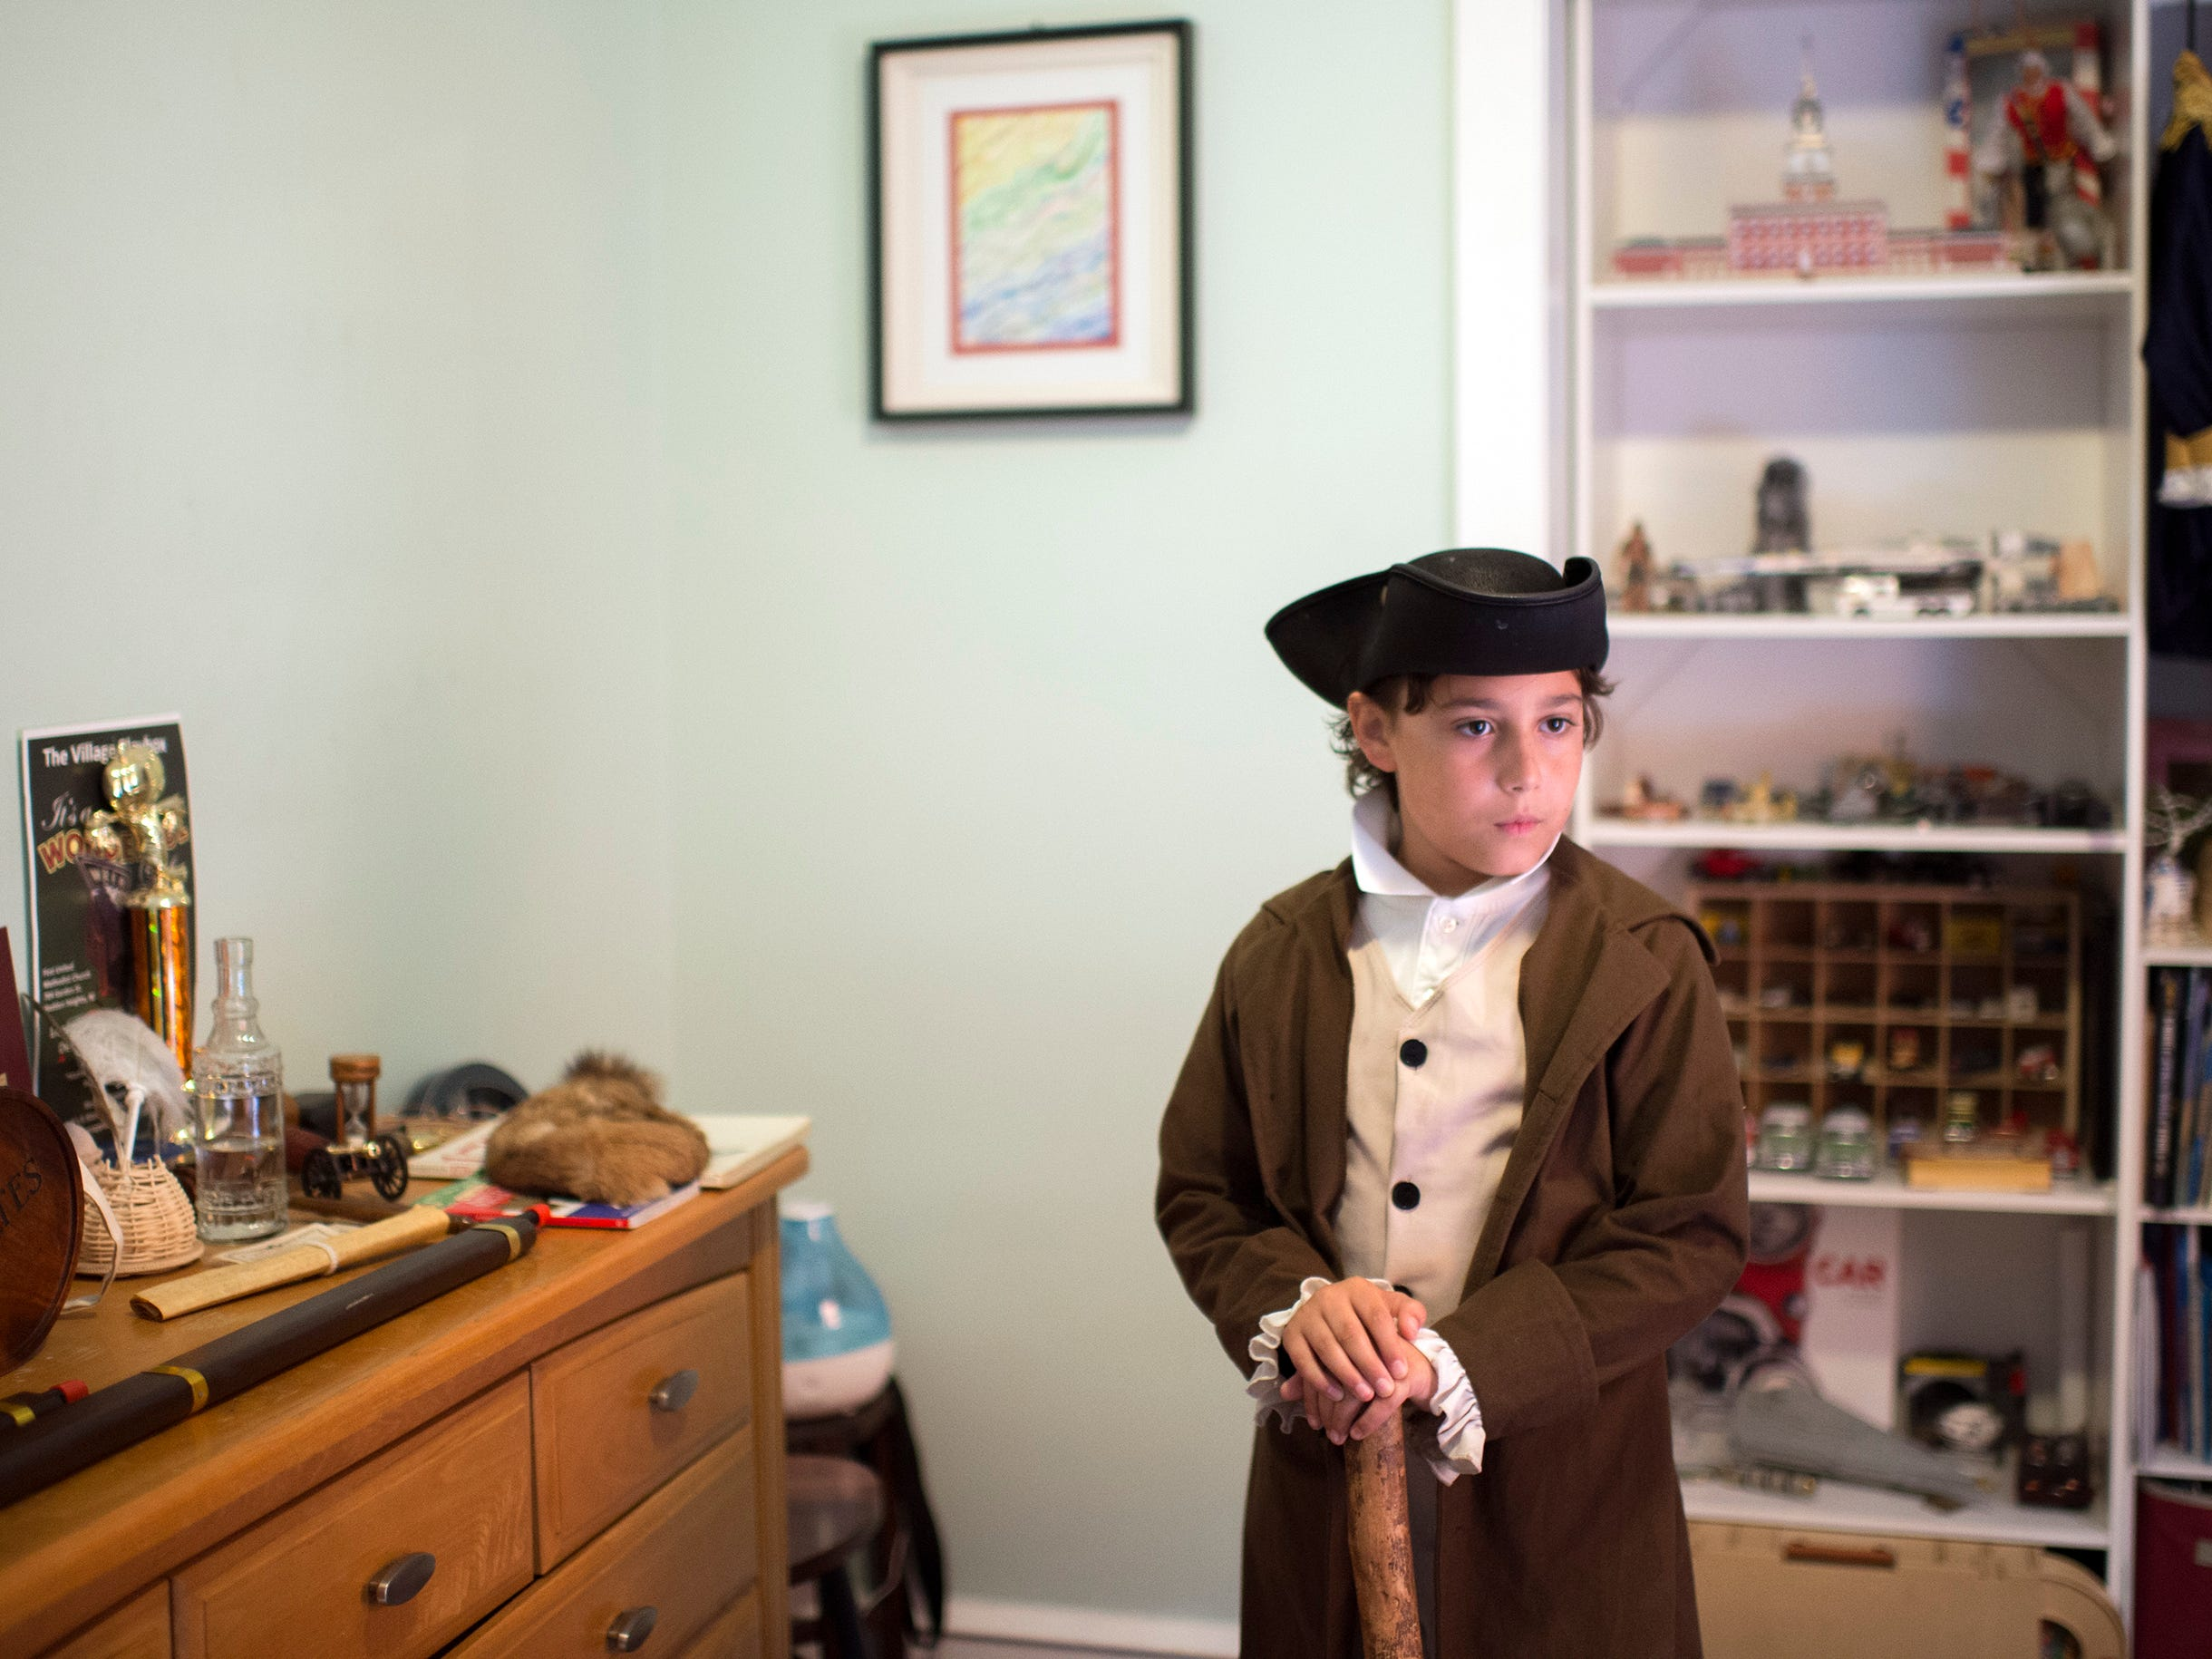 Joseph Gentile, 9, wears his colonial outfit in his bedroom Thursday, Aug. 9, 2018 in Haddon Heights, N.J.